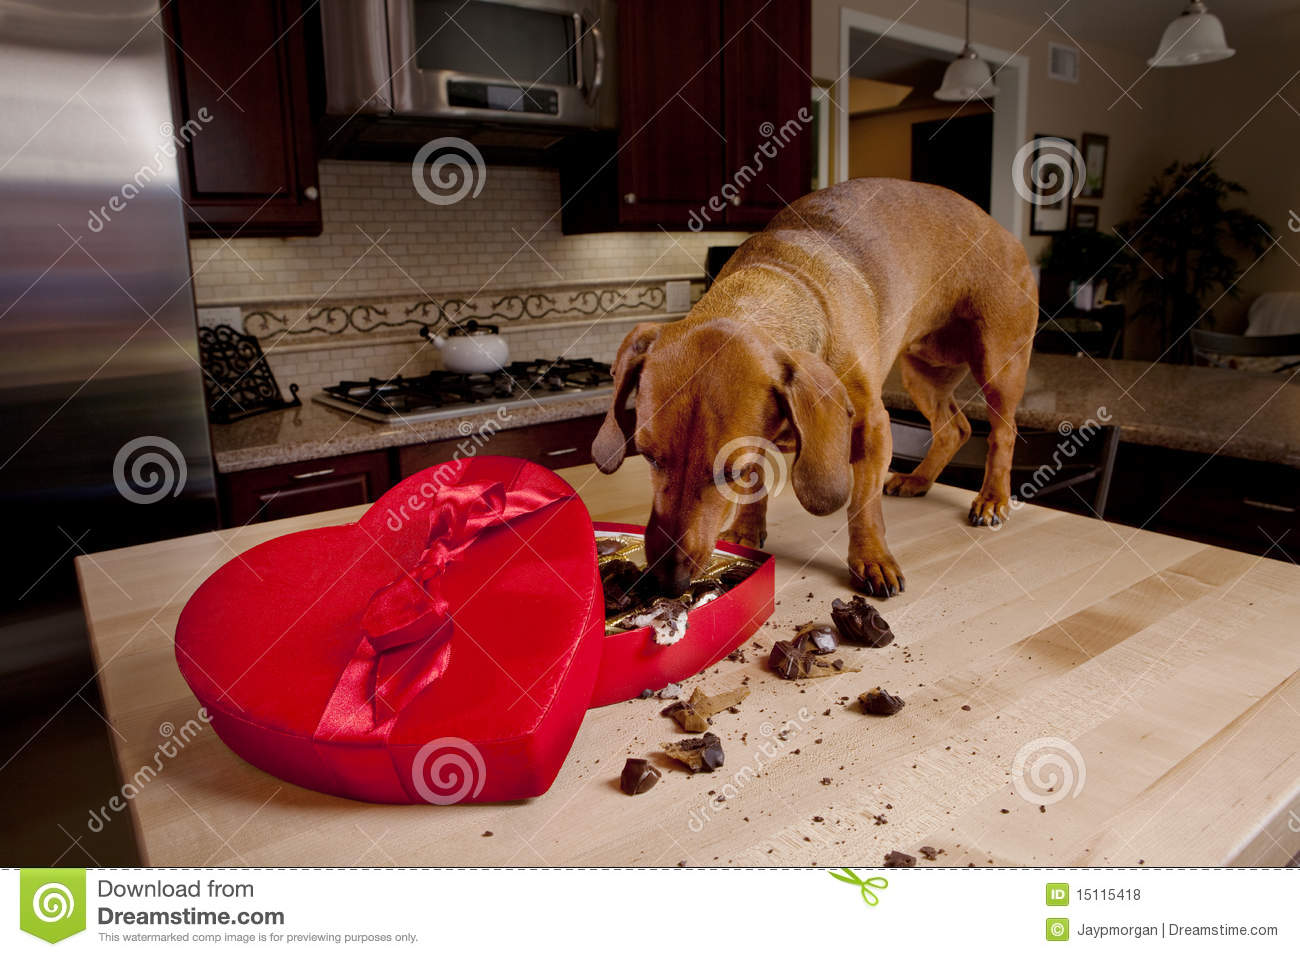 Doxie Dog Eating Chocolates From Heart Shaped Box Stock Photo ...